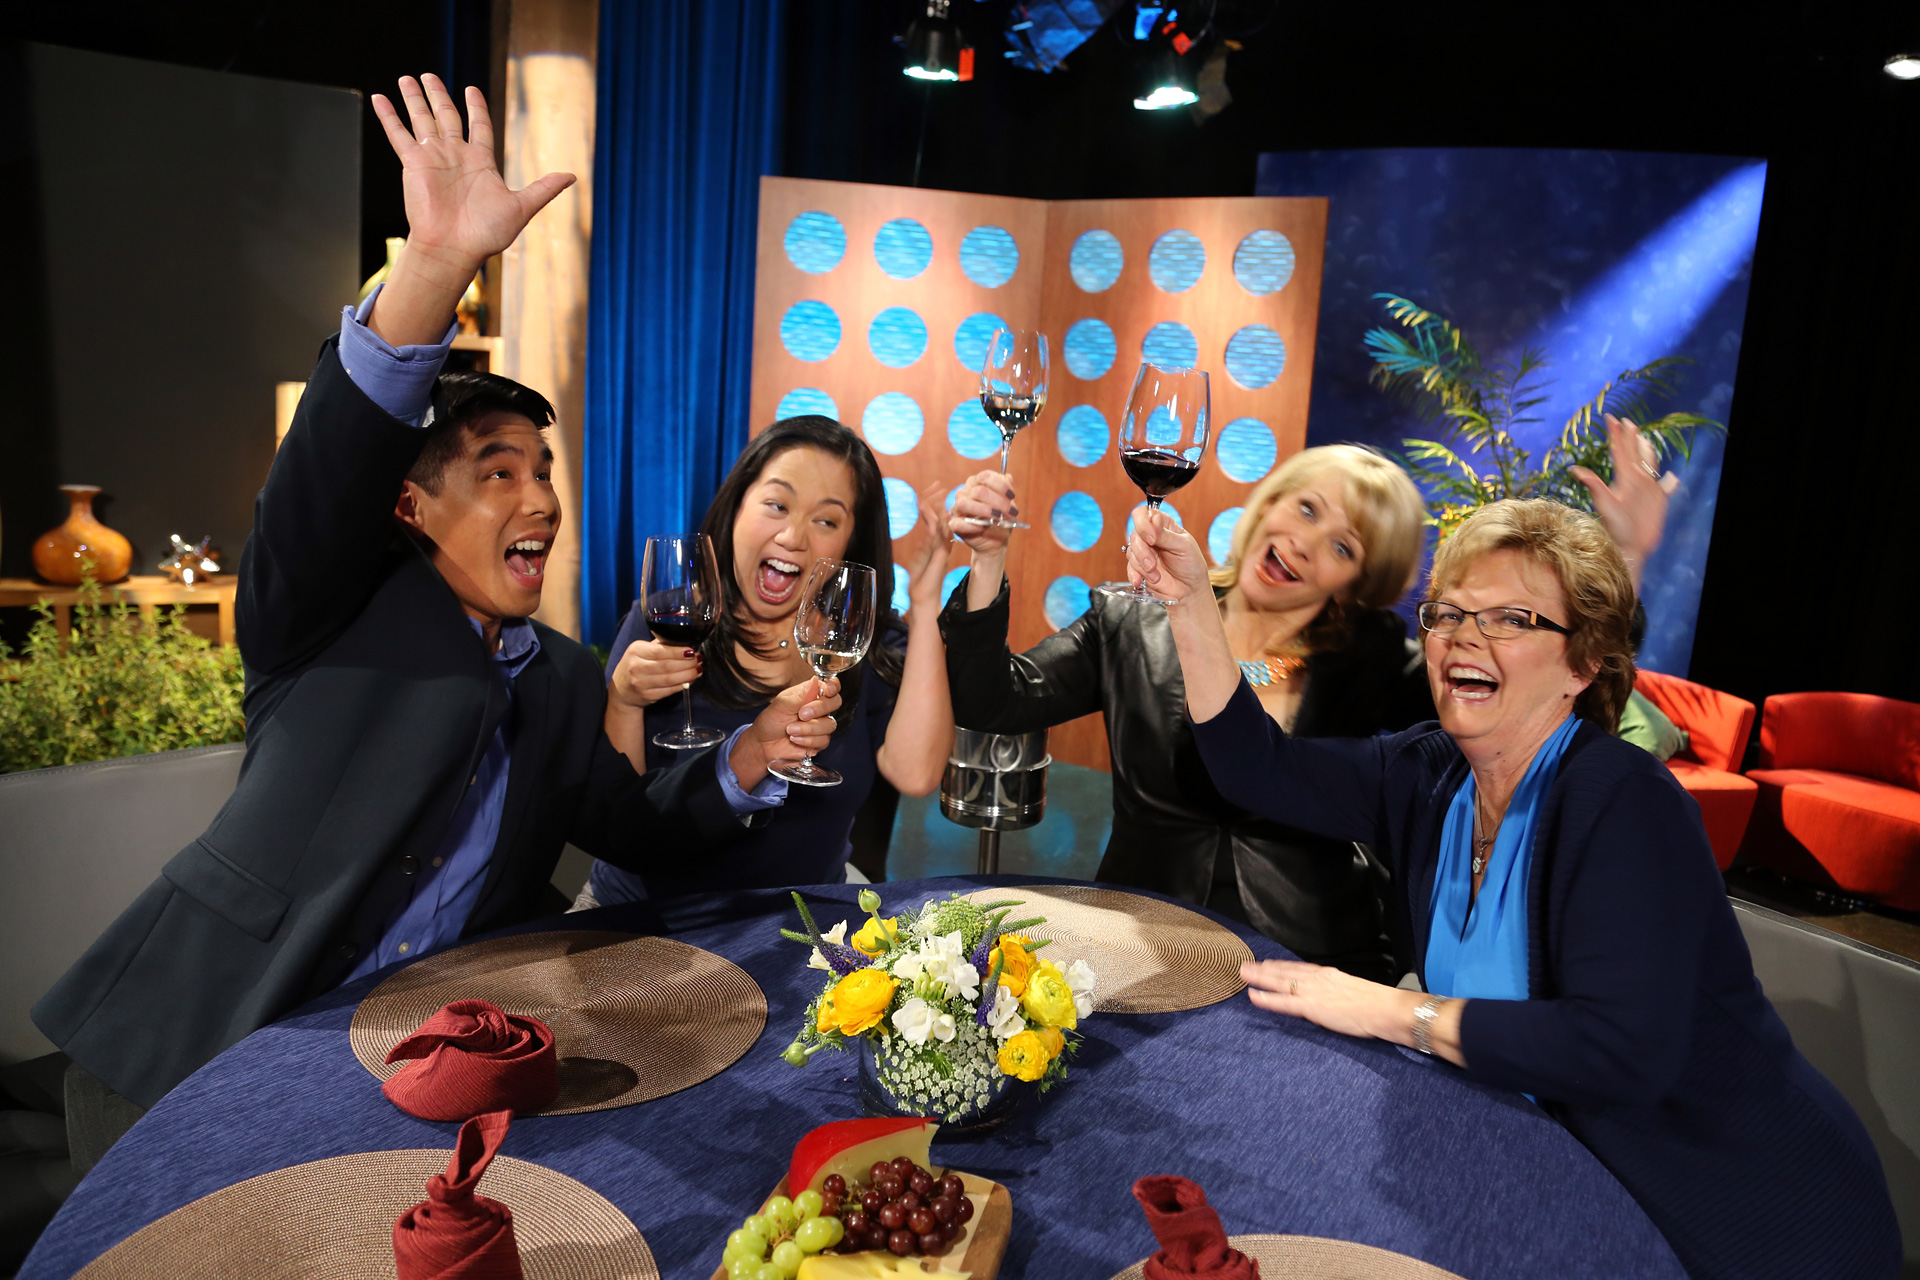 Host Leslie Sbrocco and guests having fun on the set of the episode 7 of season 11.